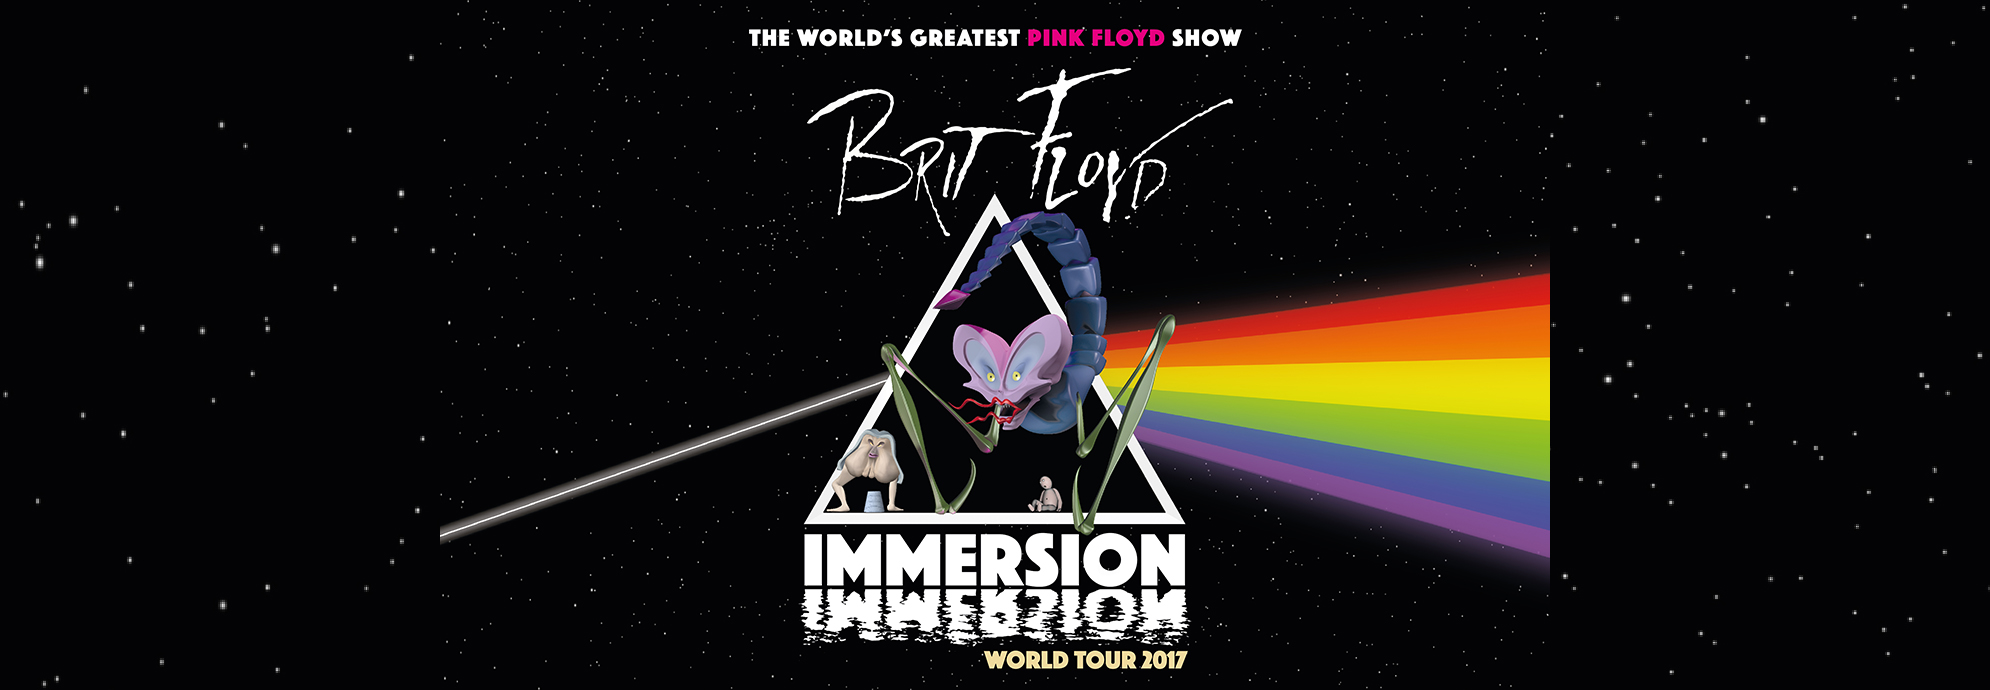 BRIT FLOYD - Immersion World Tour